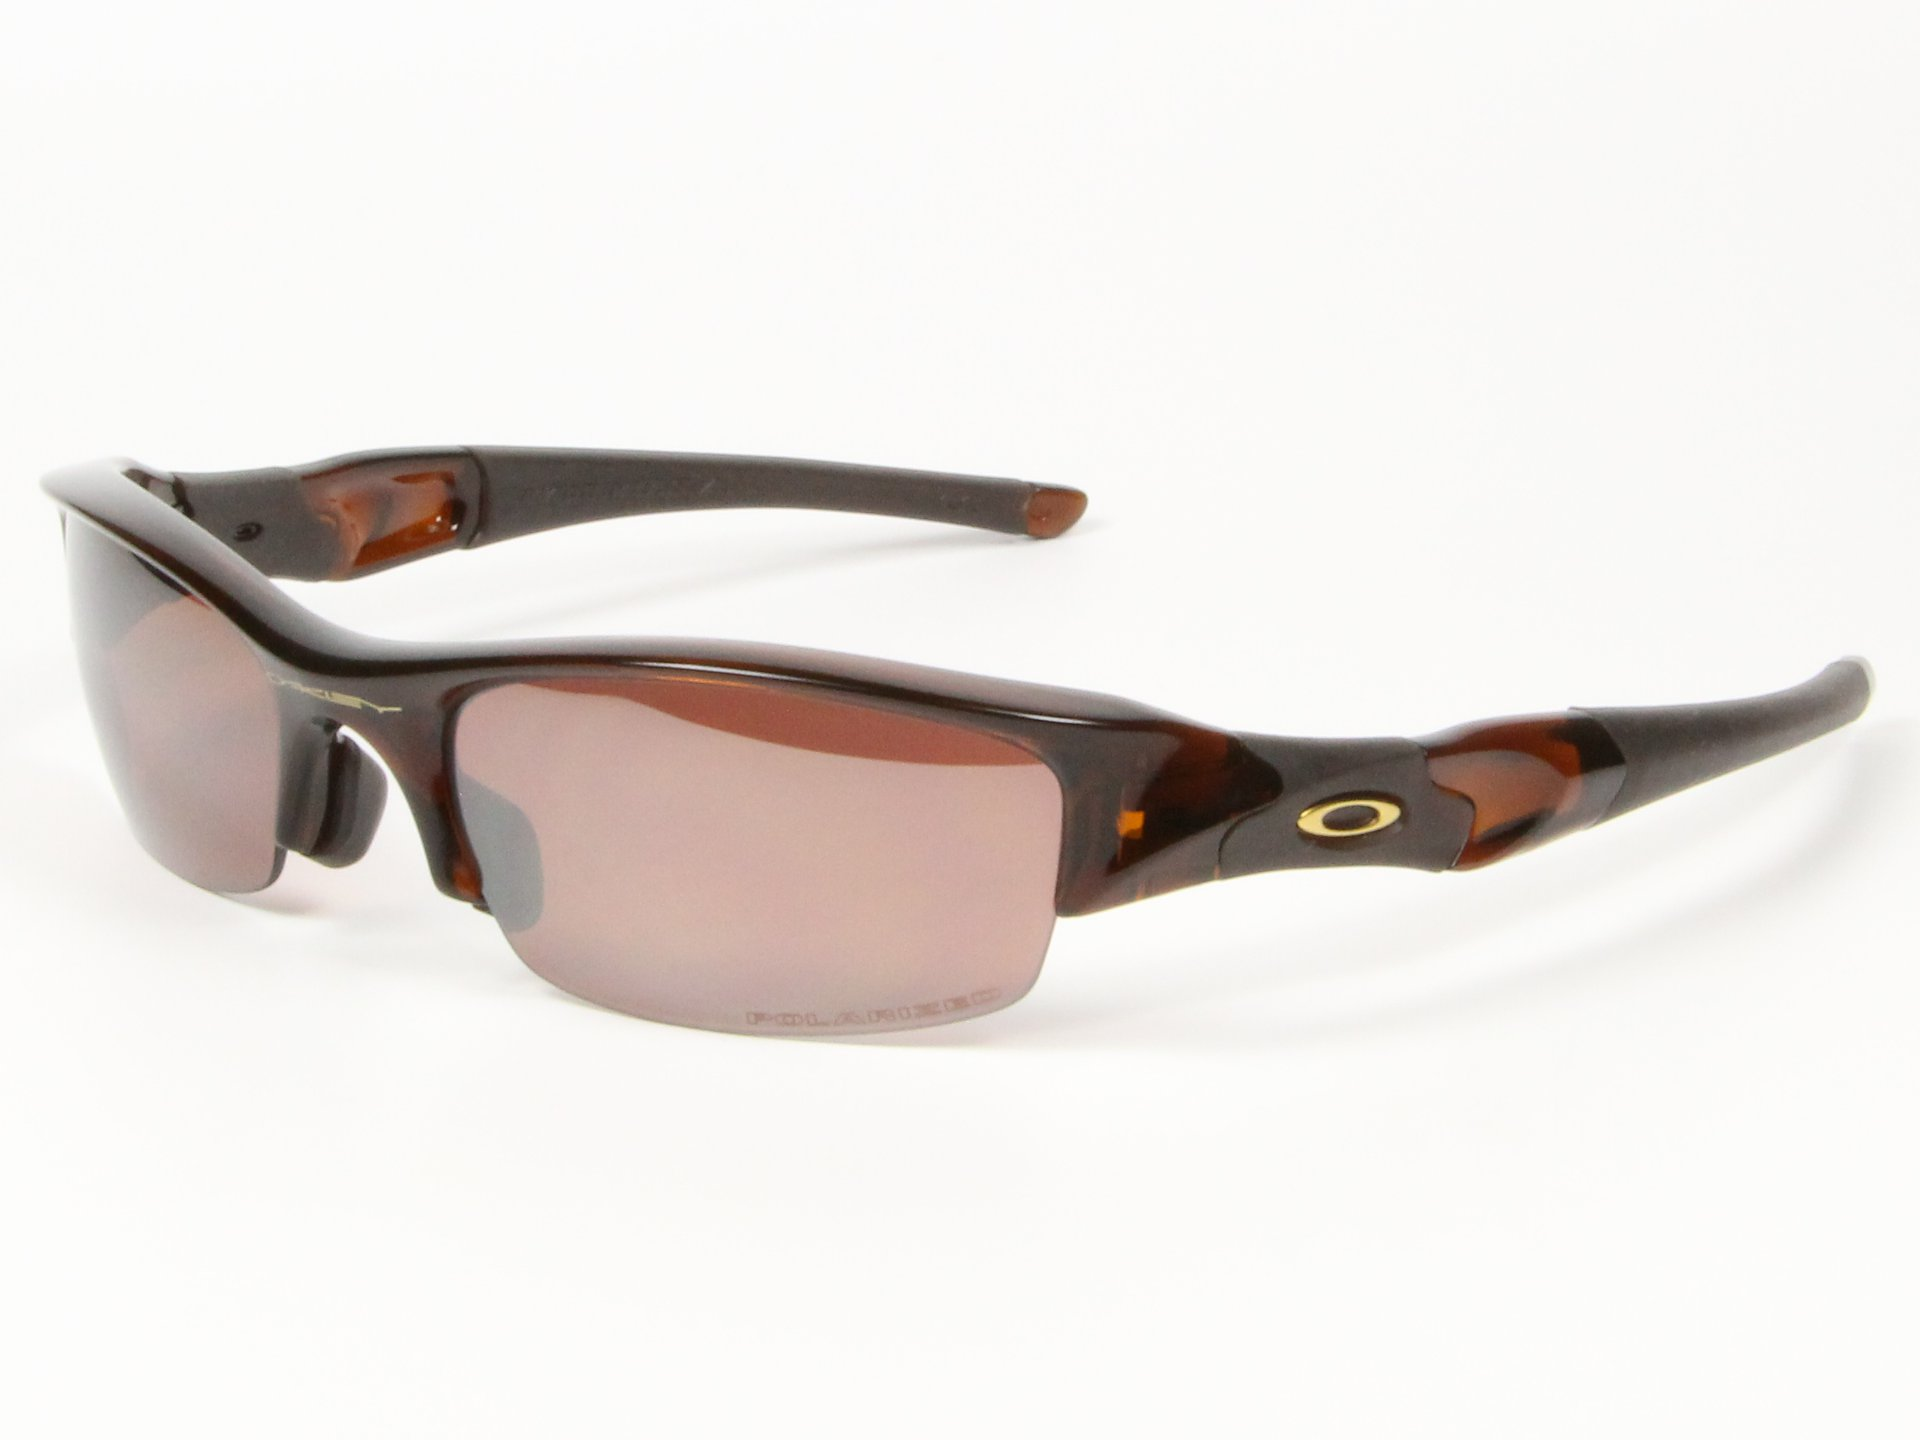 939f5c1b8e7 Replica Cazal Sunglasses Amazon « Heritage Malta